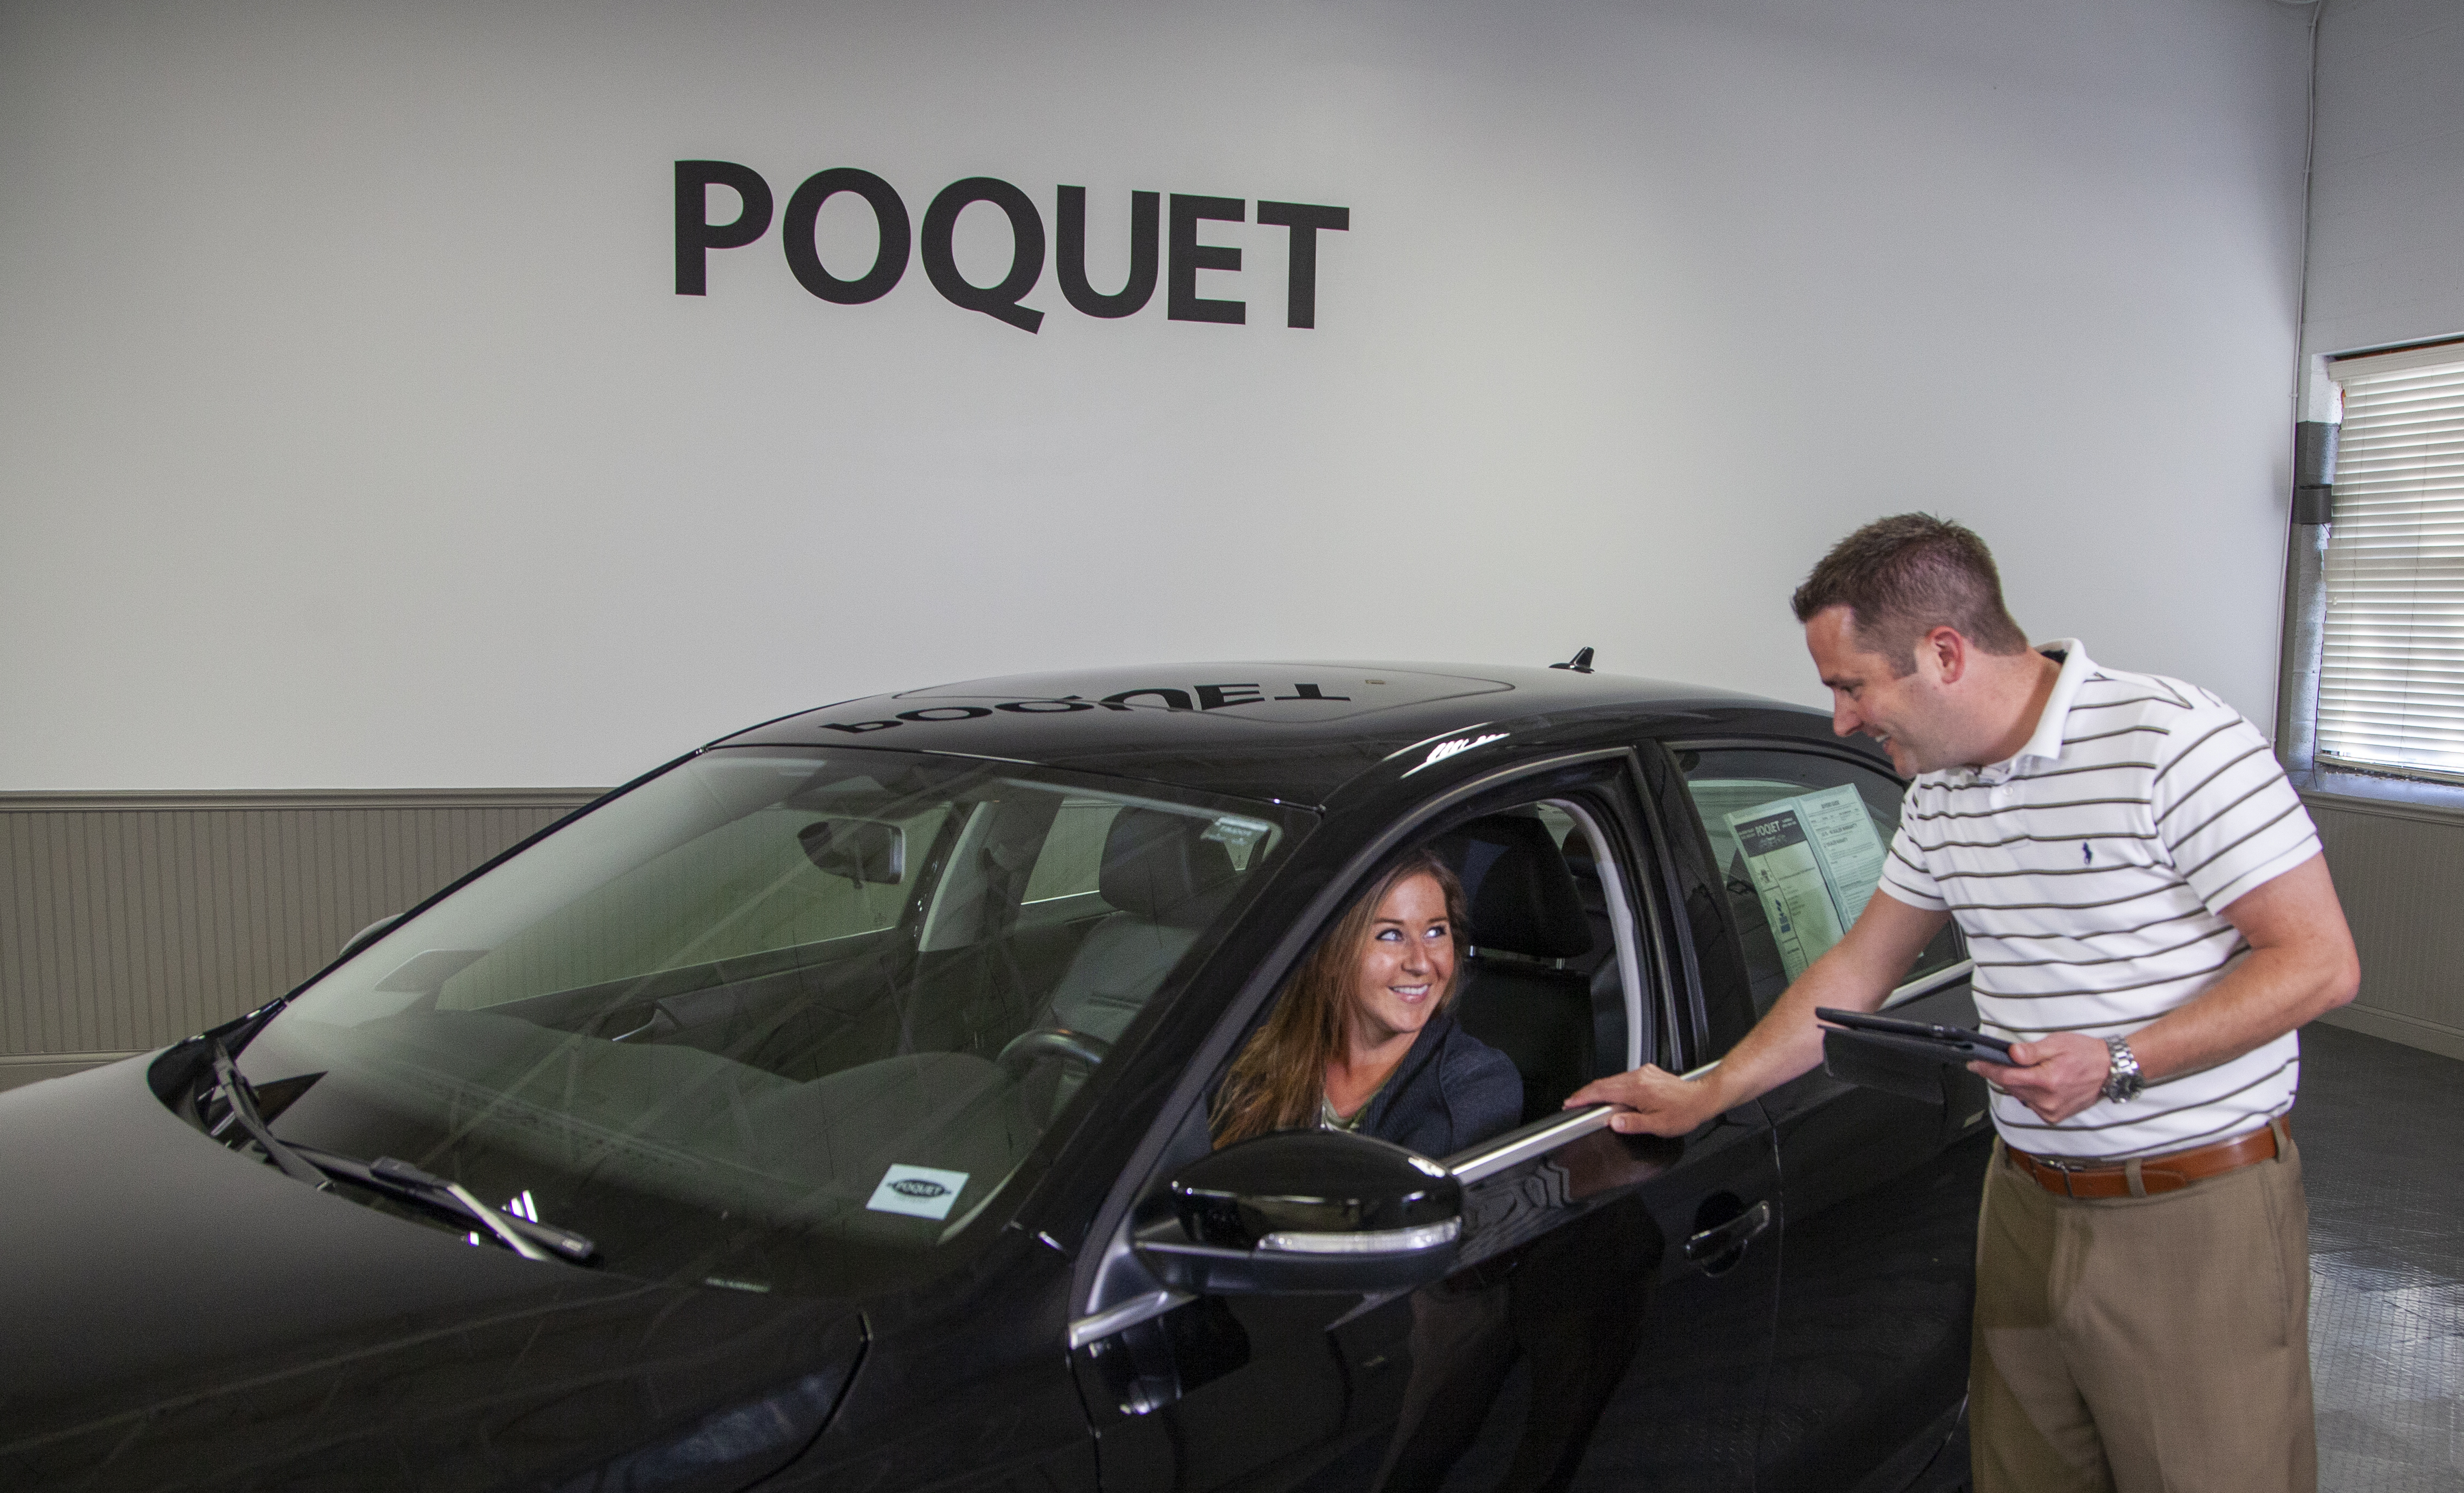 auto-dealer-selling-black-car-to-customer-poquet-2